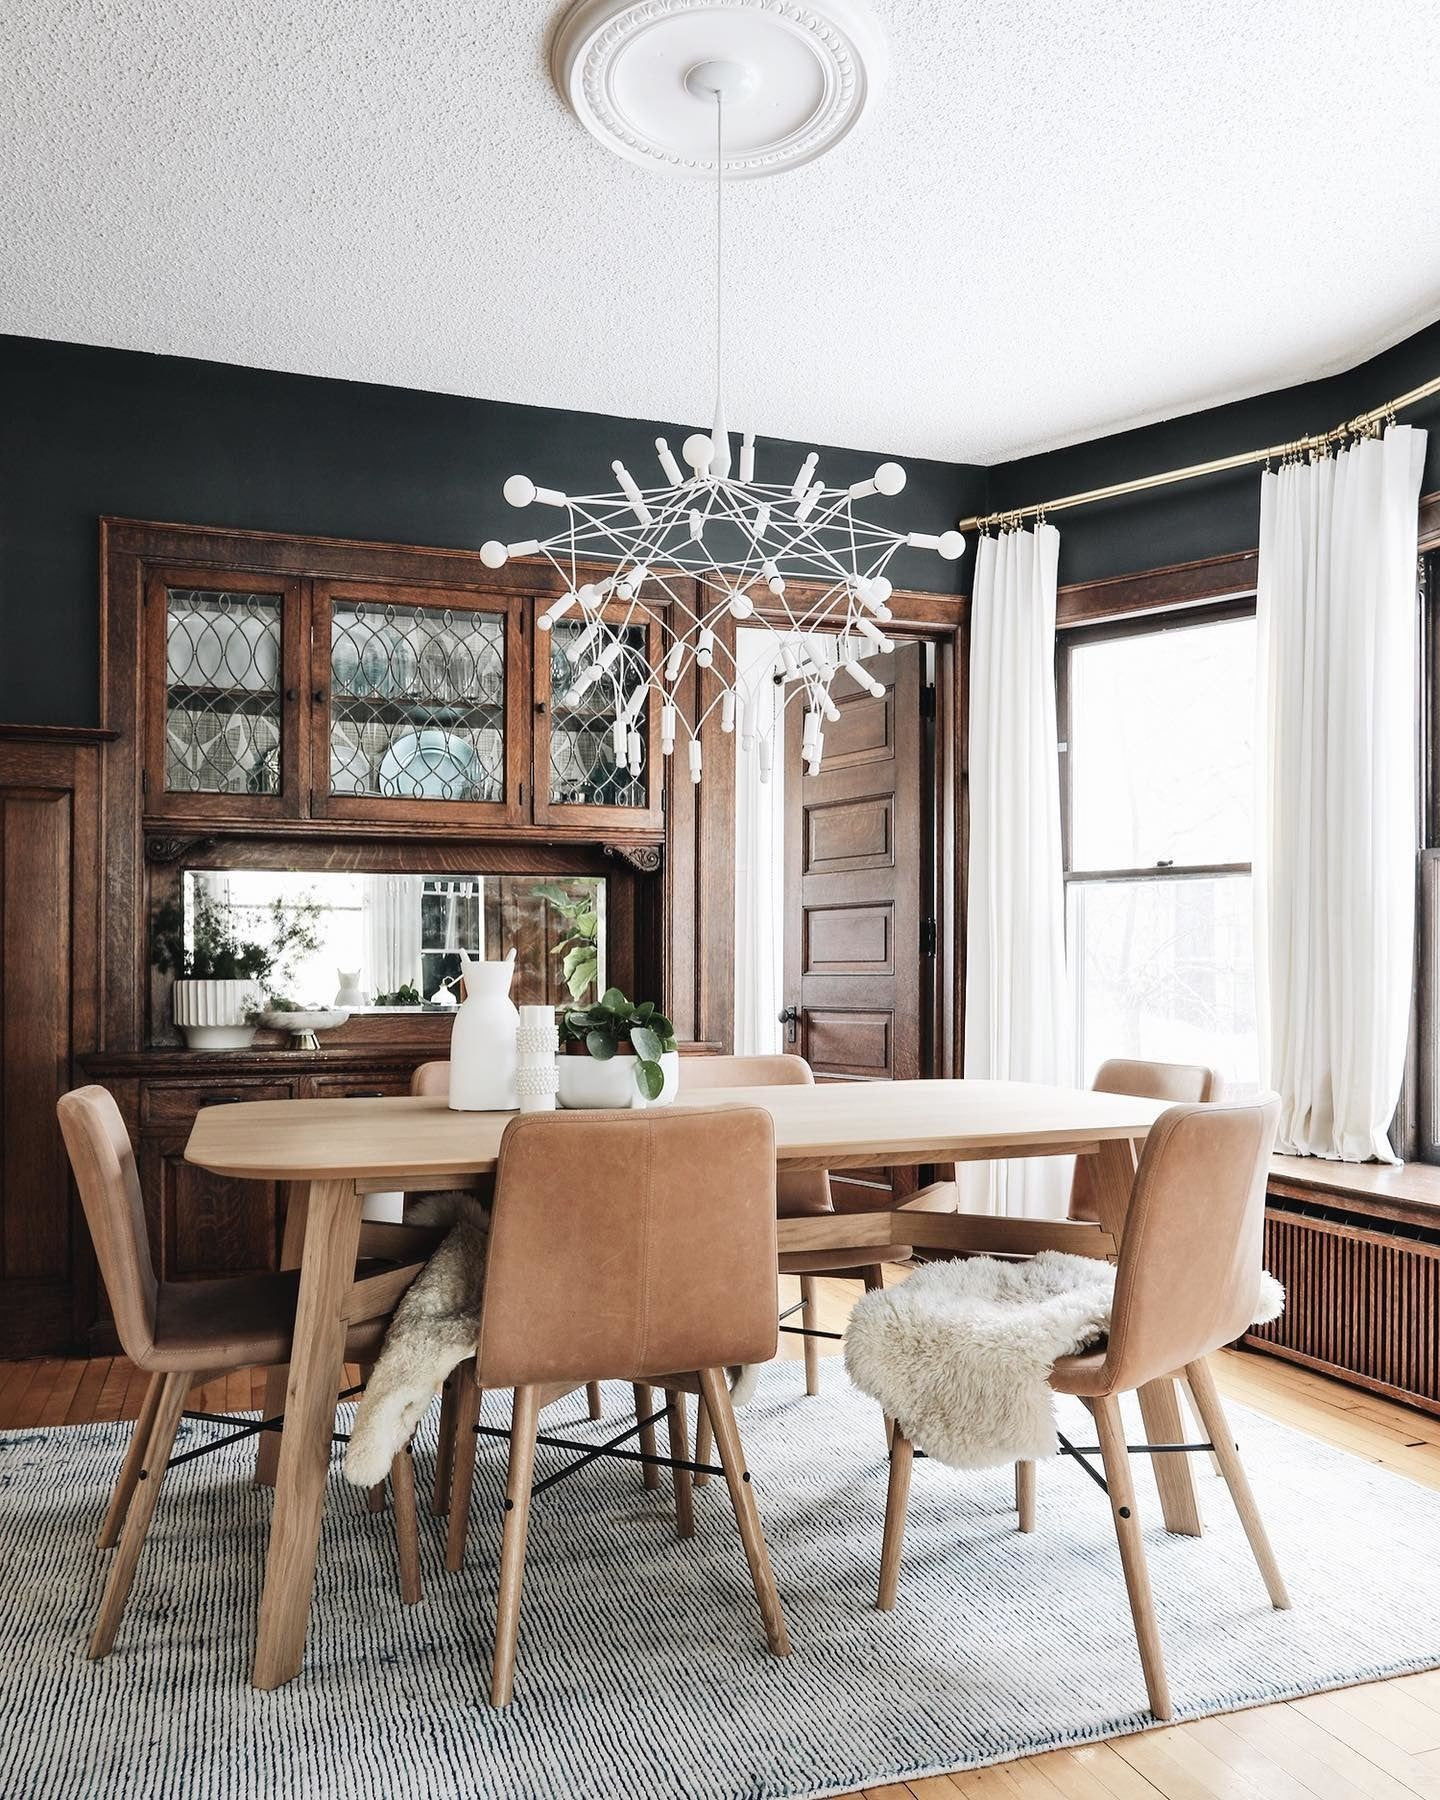 Continuing On With The Before After S I Want To Share Our Dining Room In Typical Four Square Light Oak Dining Table Dark Dining Room Craftsman Dining Room